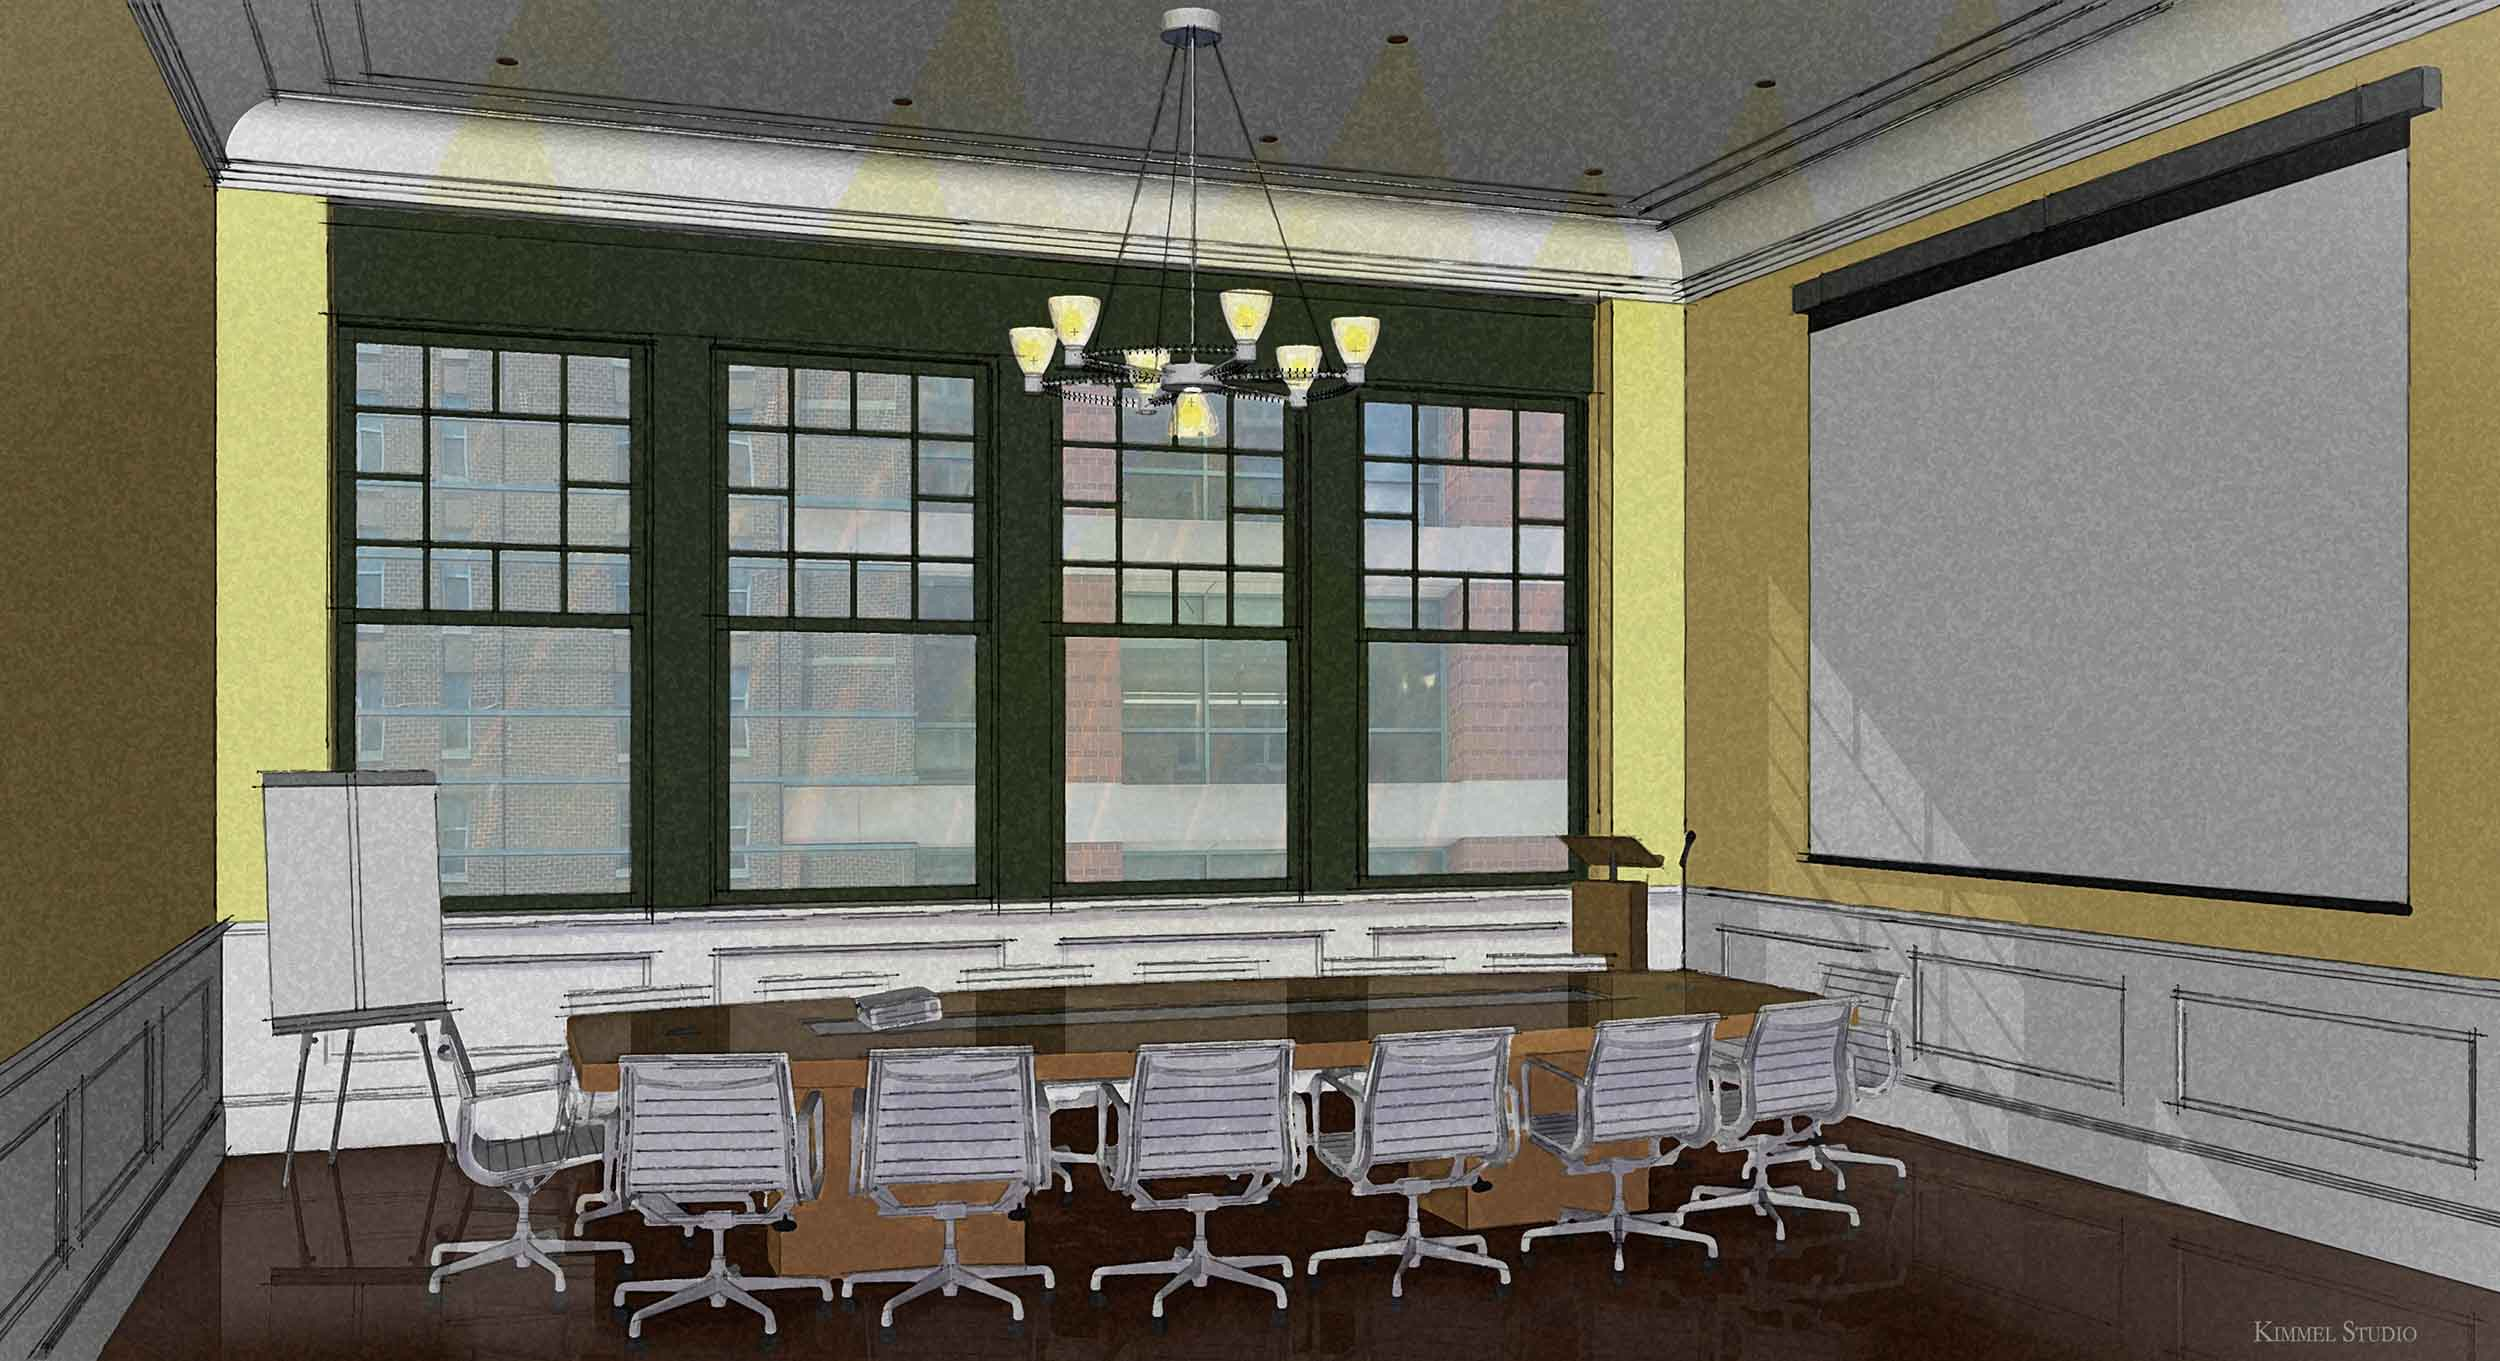 UMB Coference Room Design by Architect-min.jpg